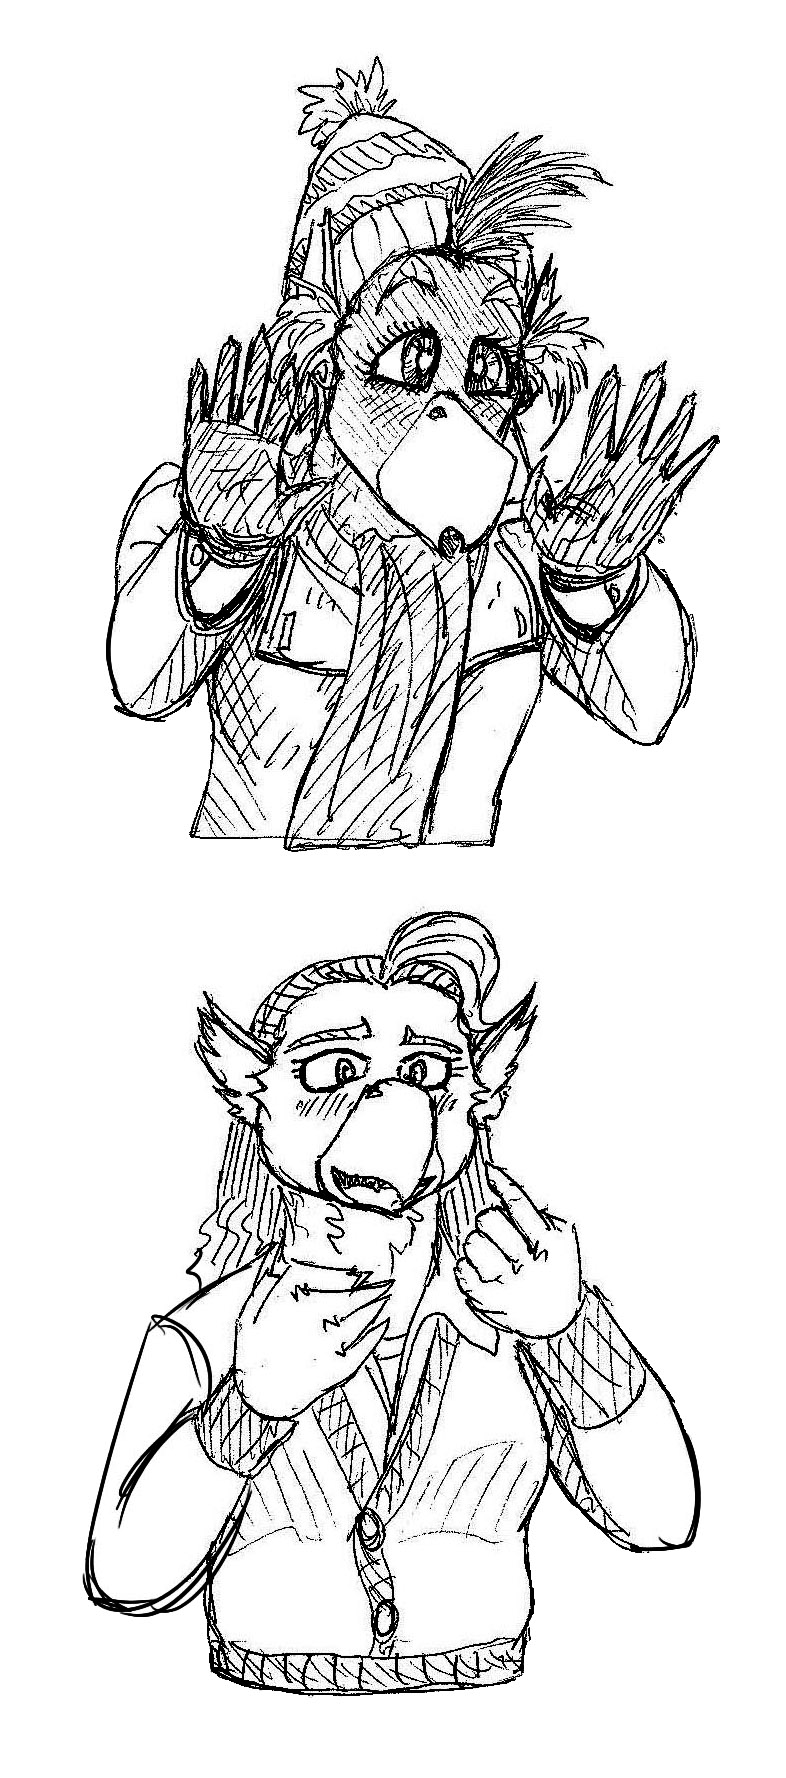 Reaction Sketches 5 - Rhys and Cass